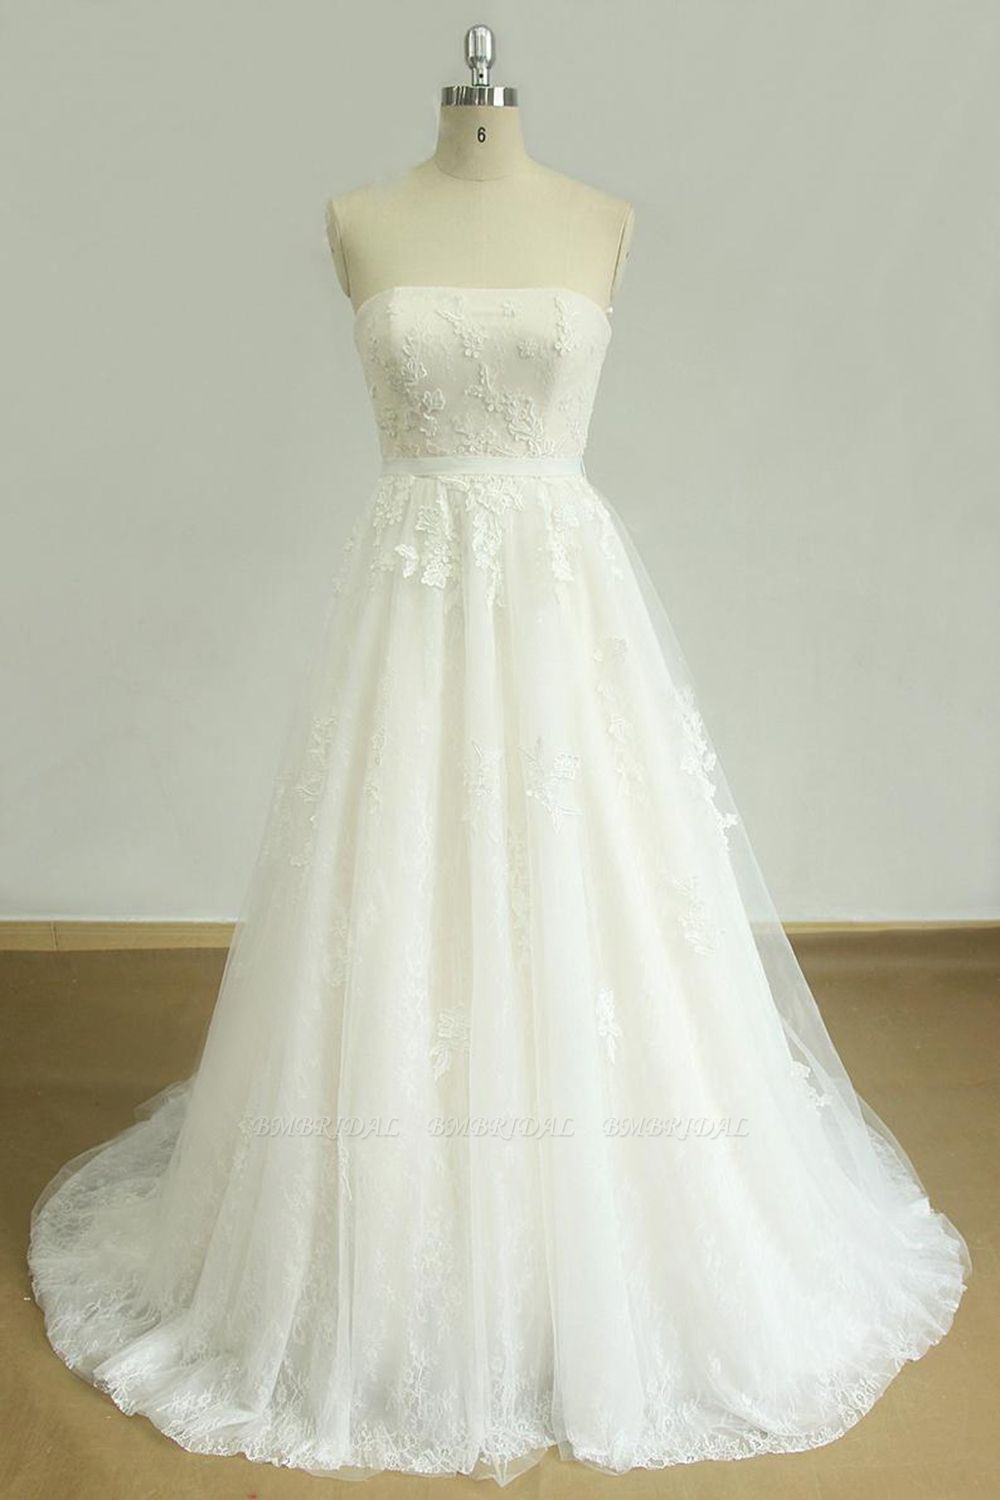 Elegant Strapless Lace Tulle Wedding Dress Appliques White A-line Bridal Gowns On Sale